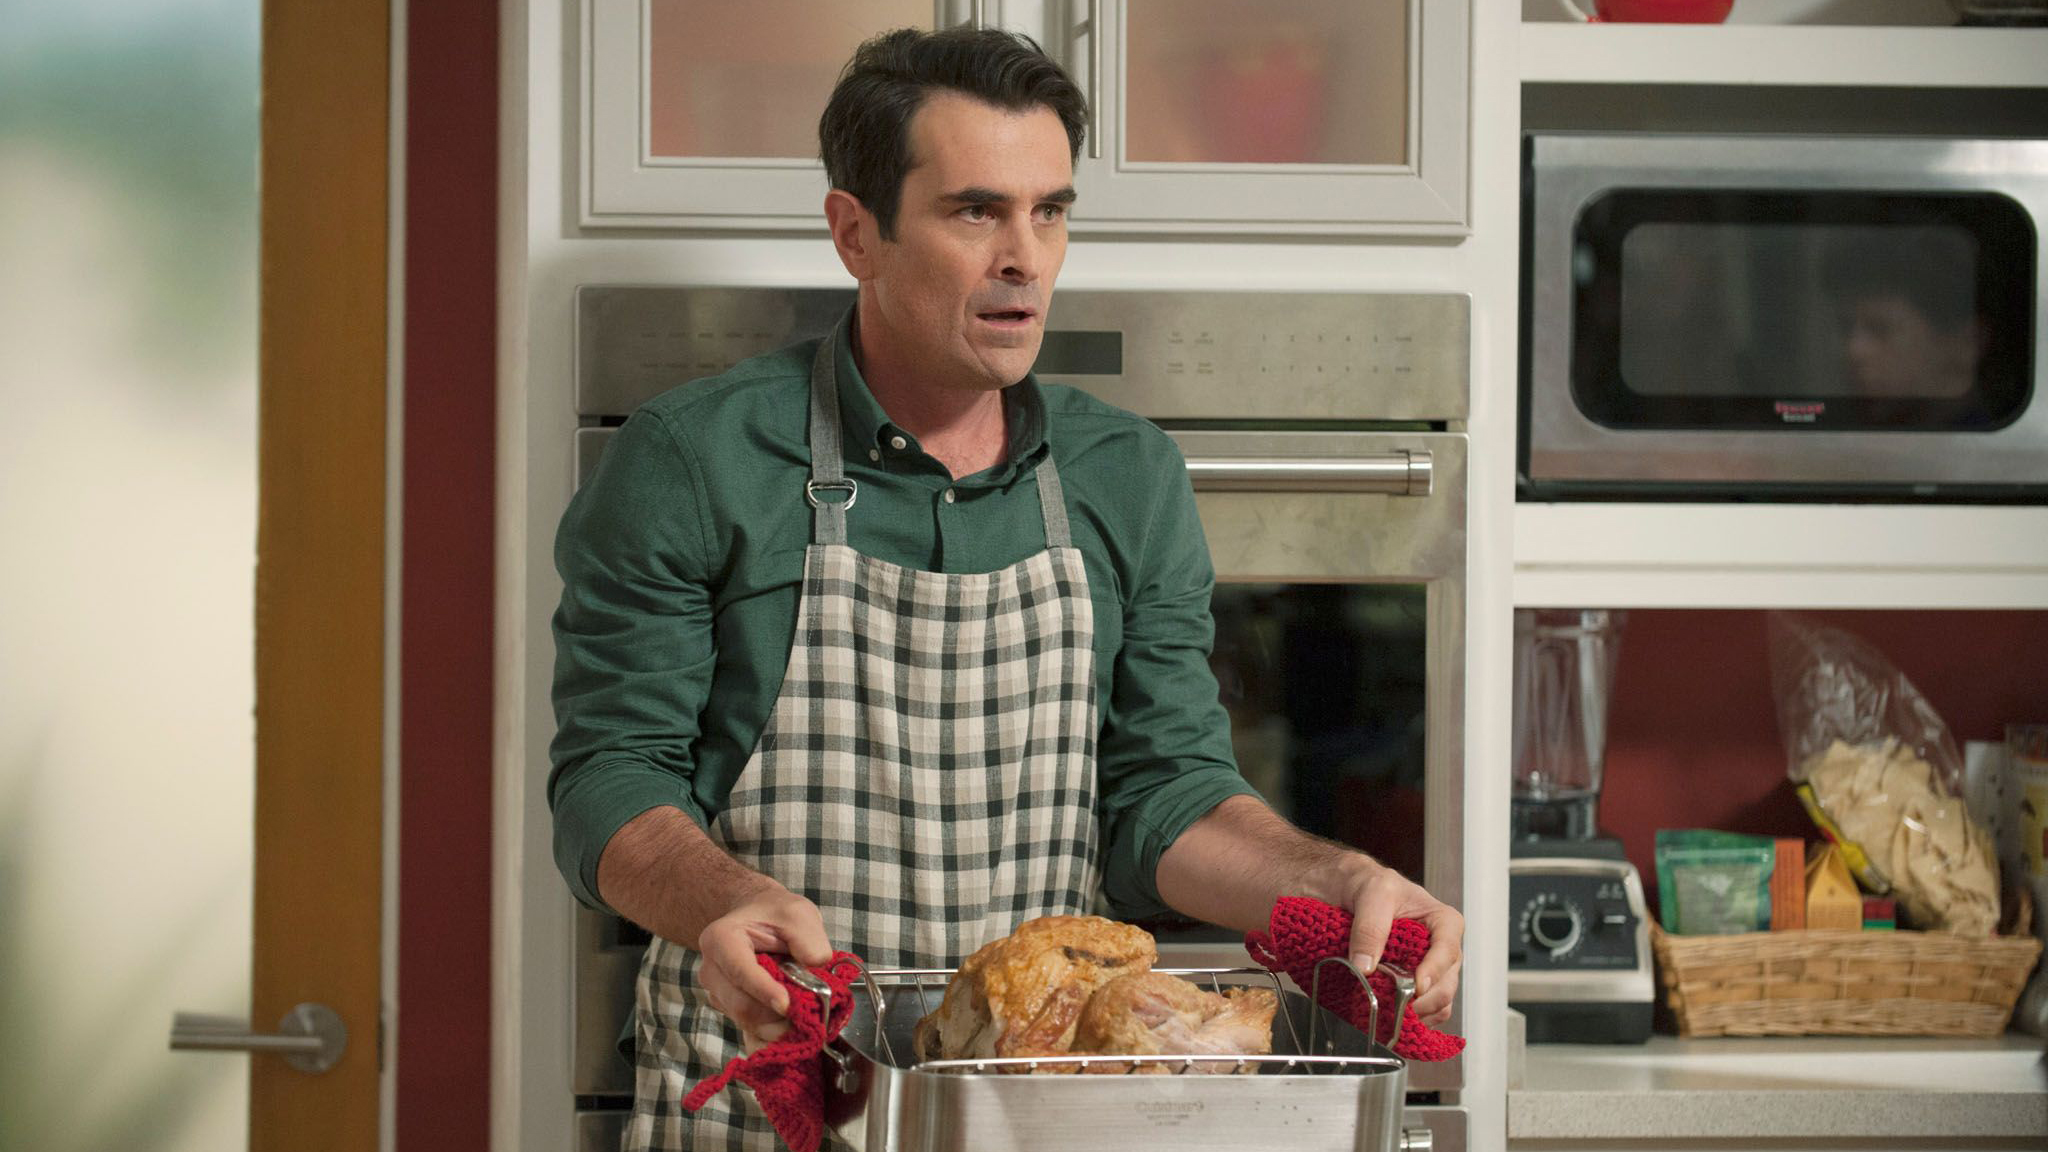 e294e500-66b5-11e4-8e22-4d84734519cf_abc-modern-family-608-three-turkeys-0389